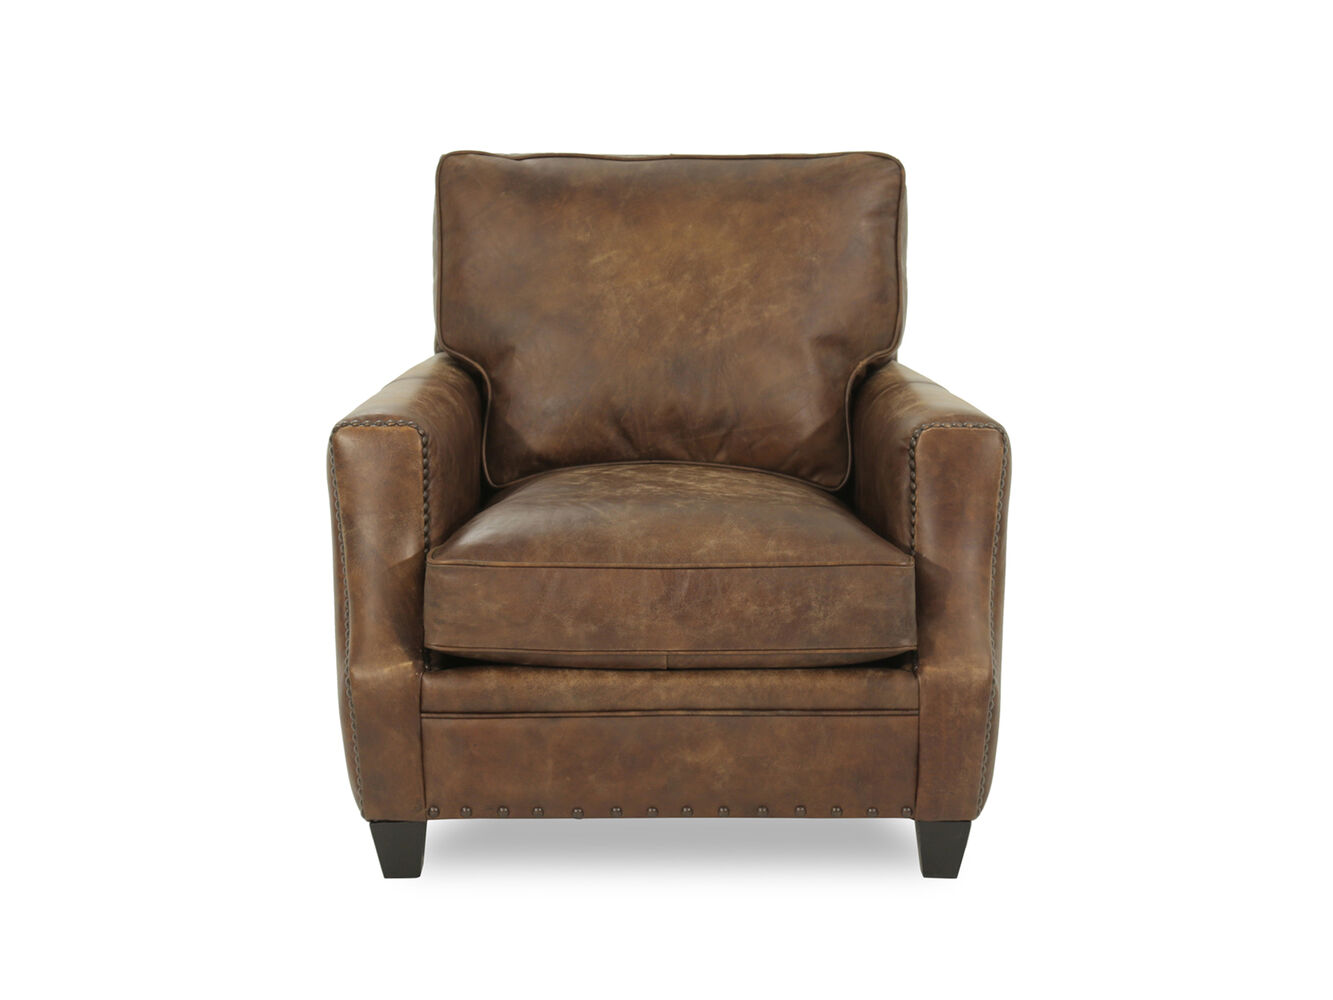 Bernhardt barclay leather mocha chair mathis brothers for Where to buy bernhardt furniture online